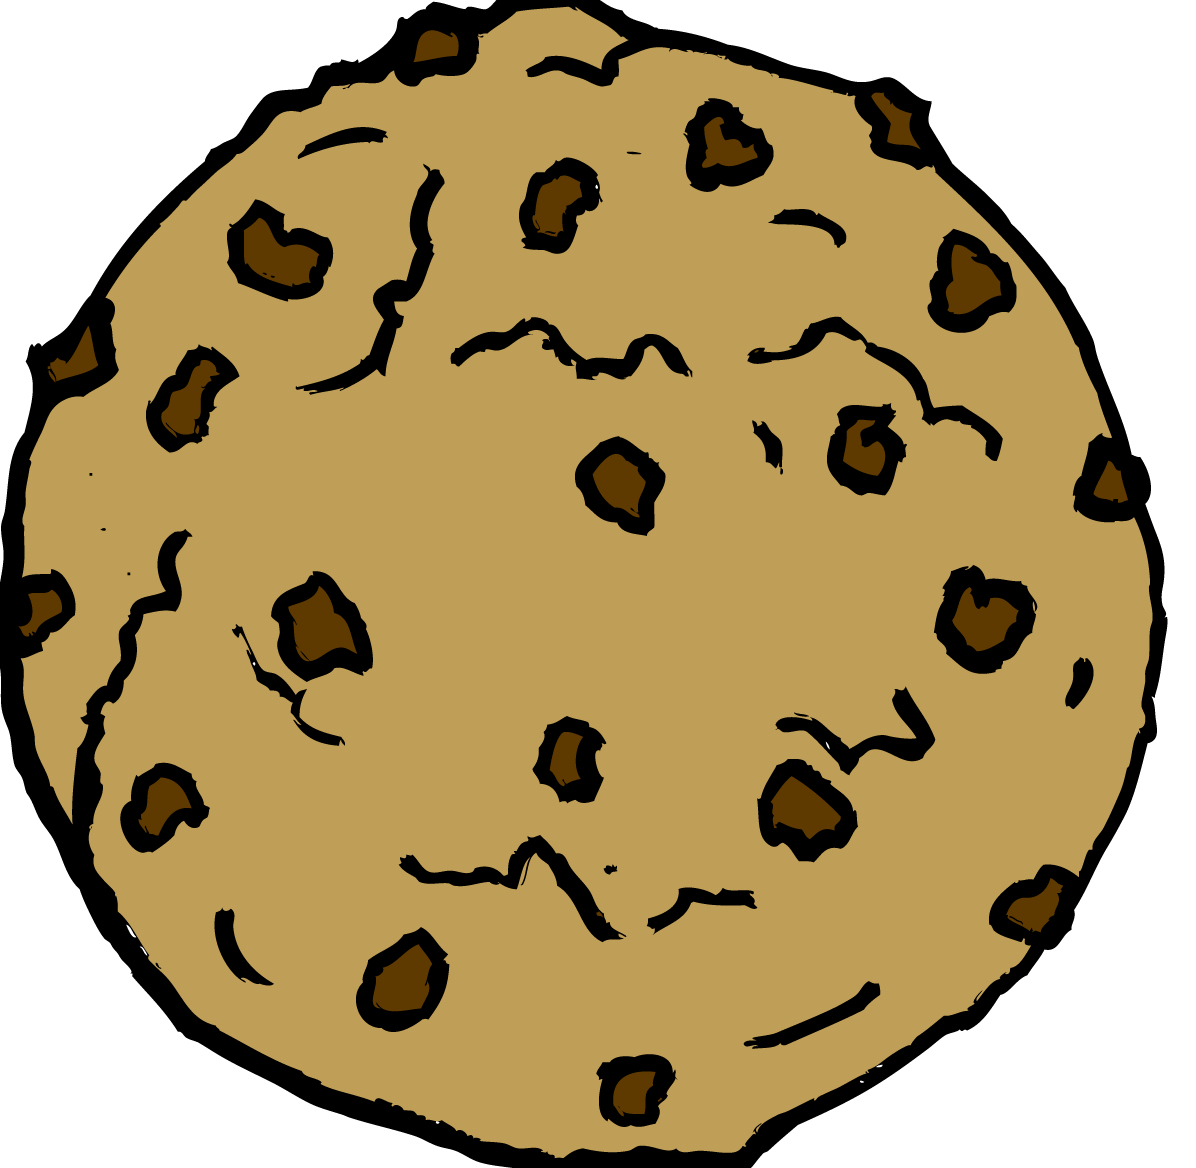 chocolate chip cookies drawing at getdrawings com free for rh getdrawings com cute chocolate chip cookie clipart chocolate chip cookies clipart free